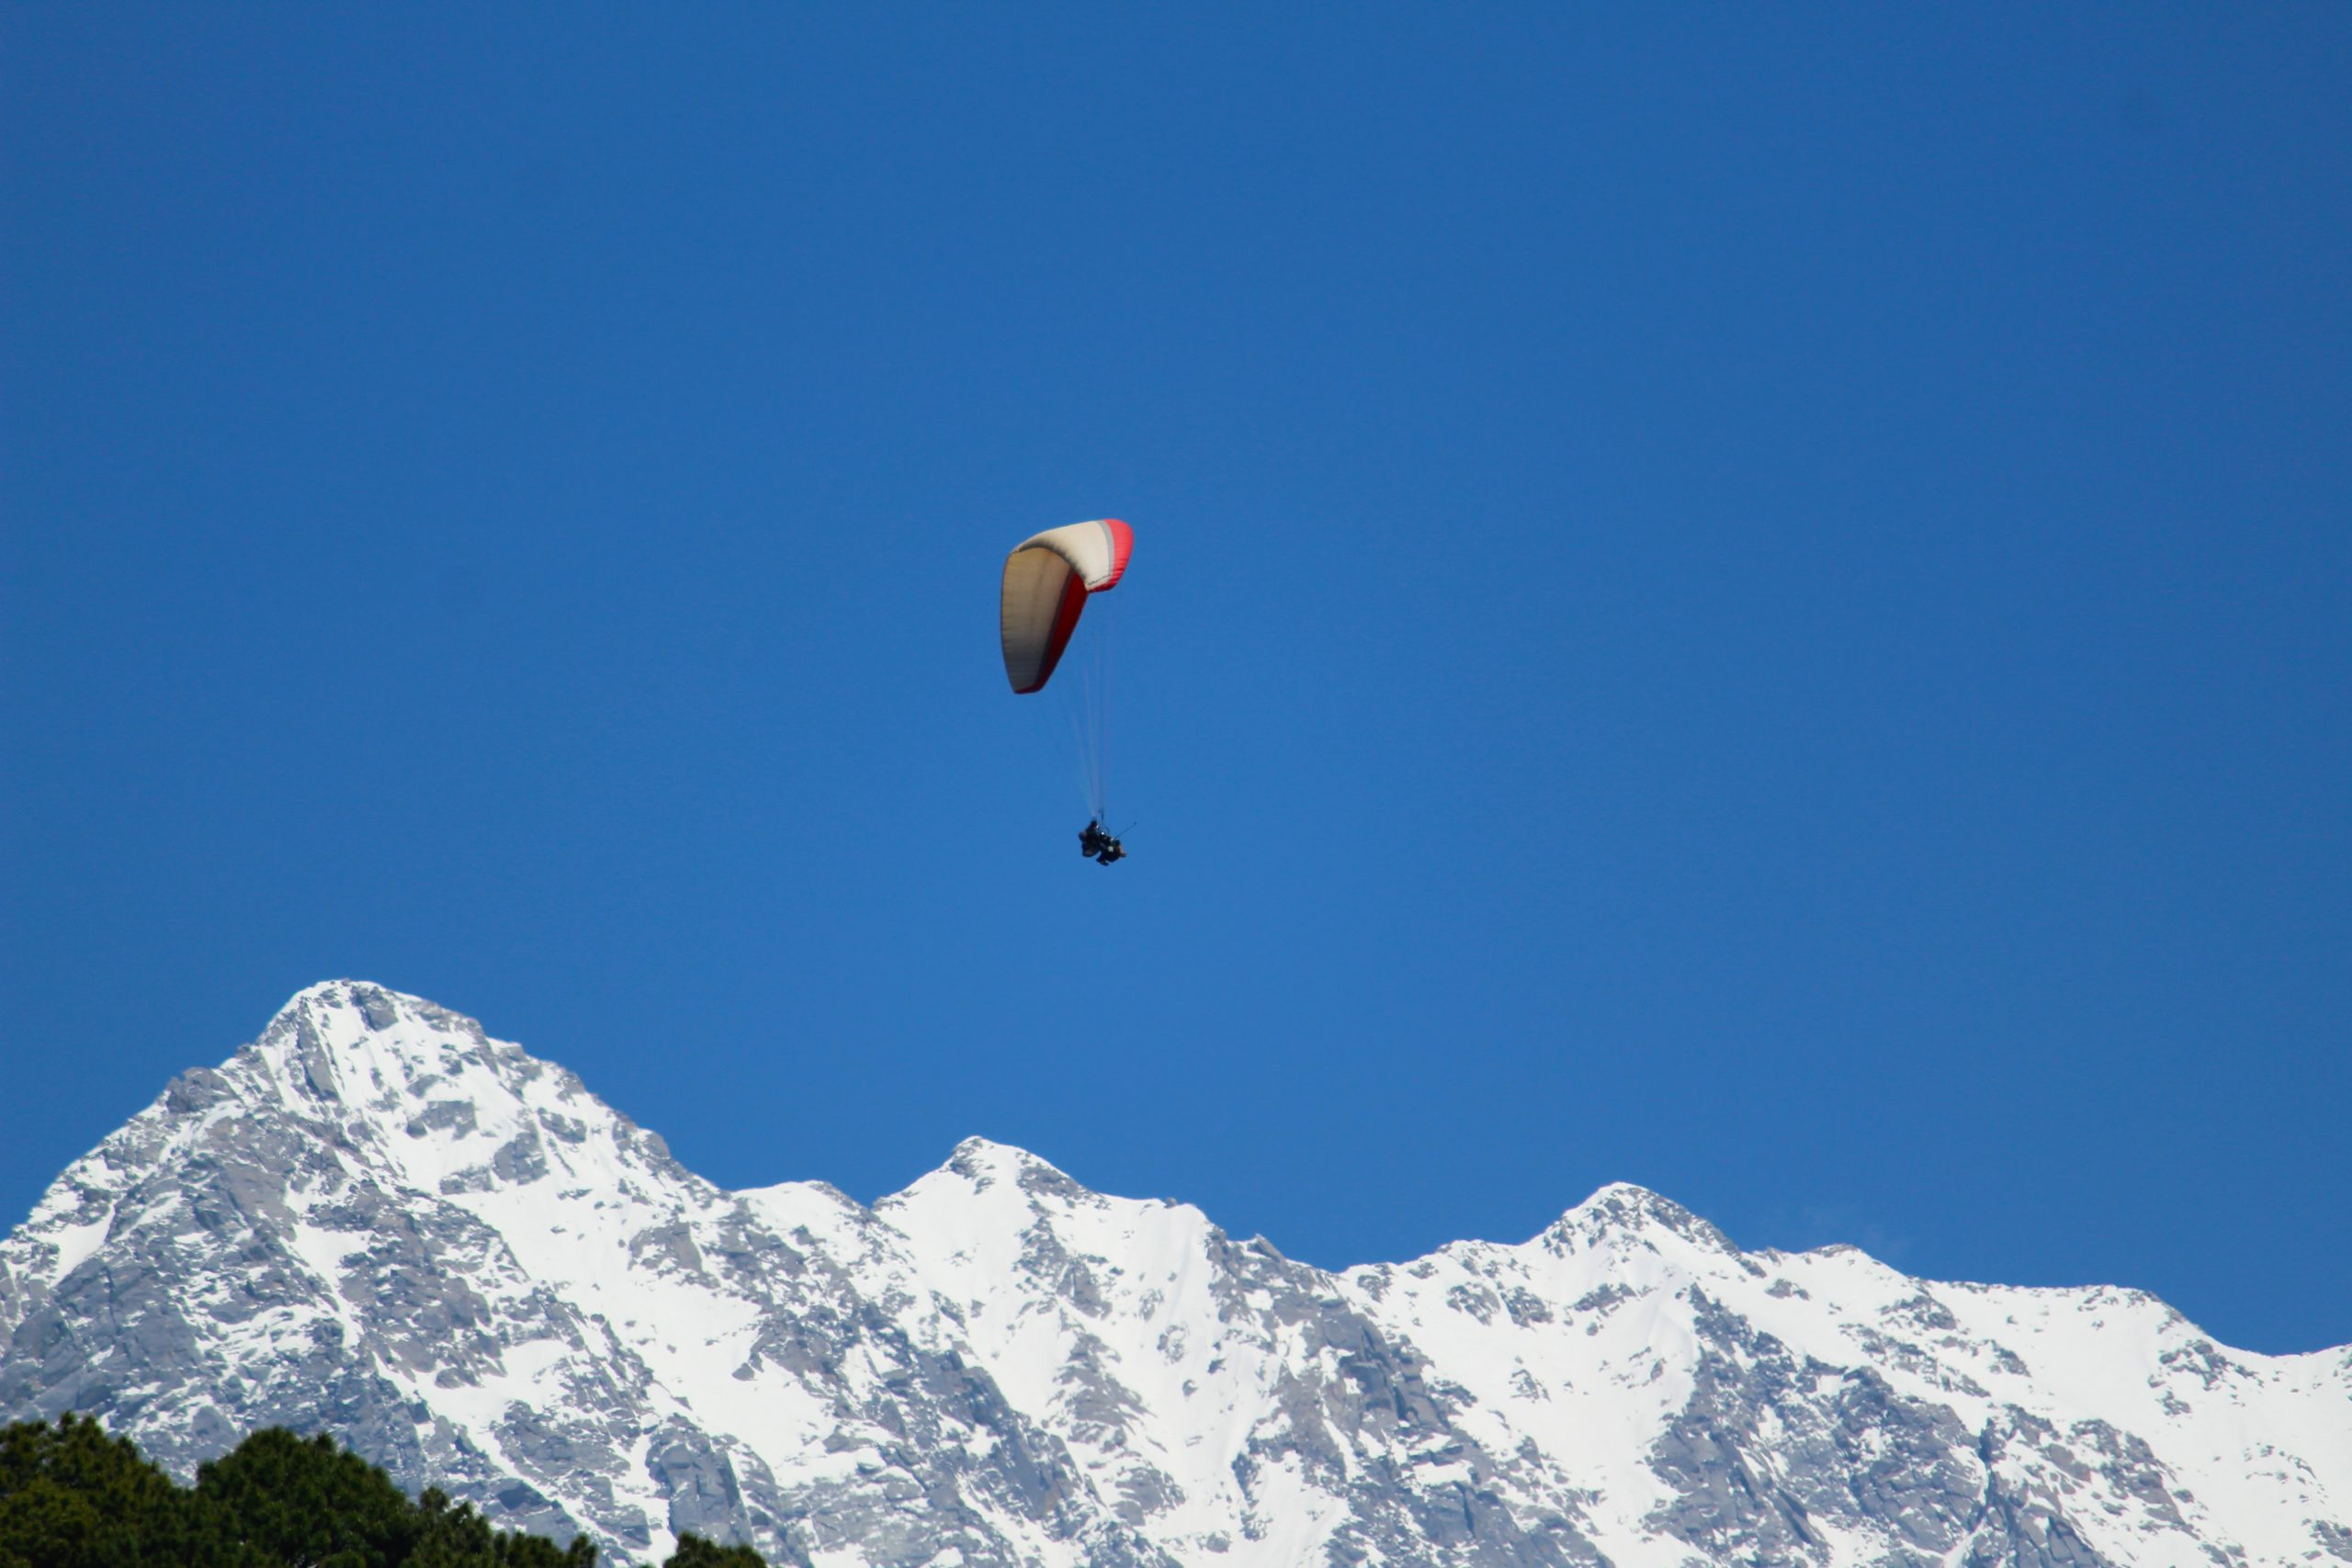 Paragliding over snowy dhauladhar mountains